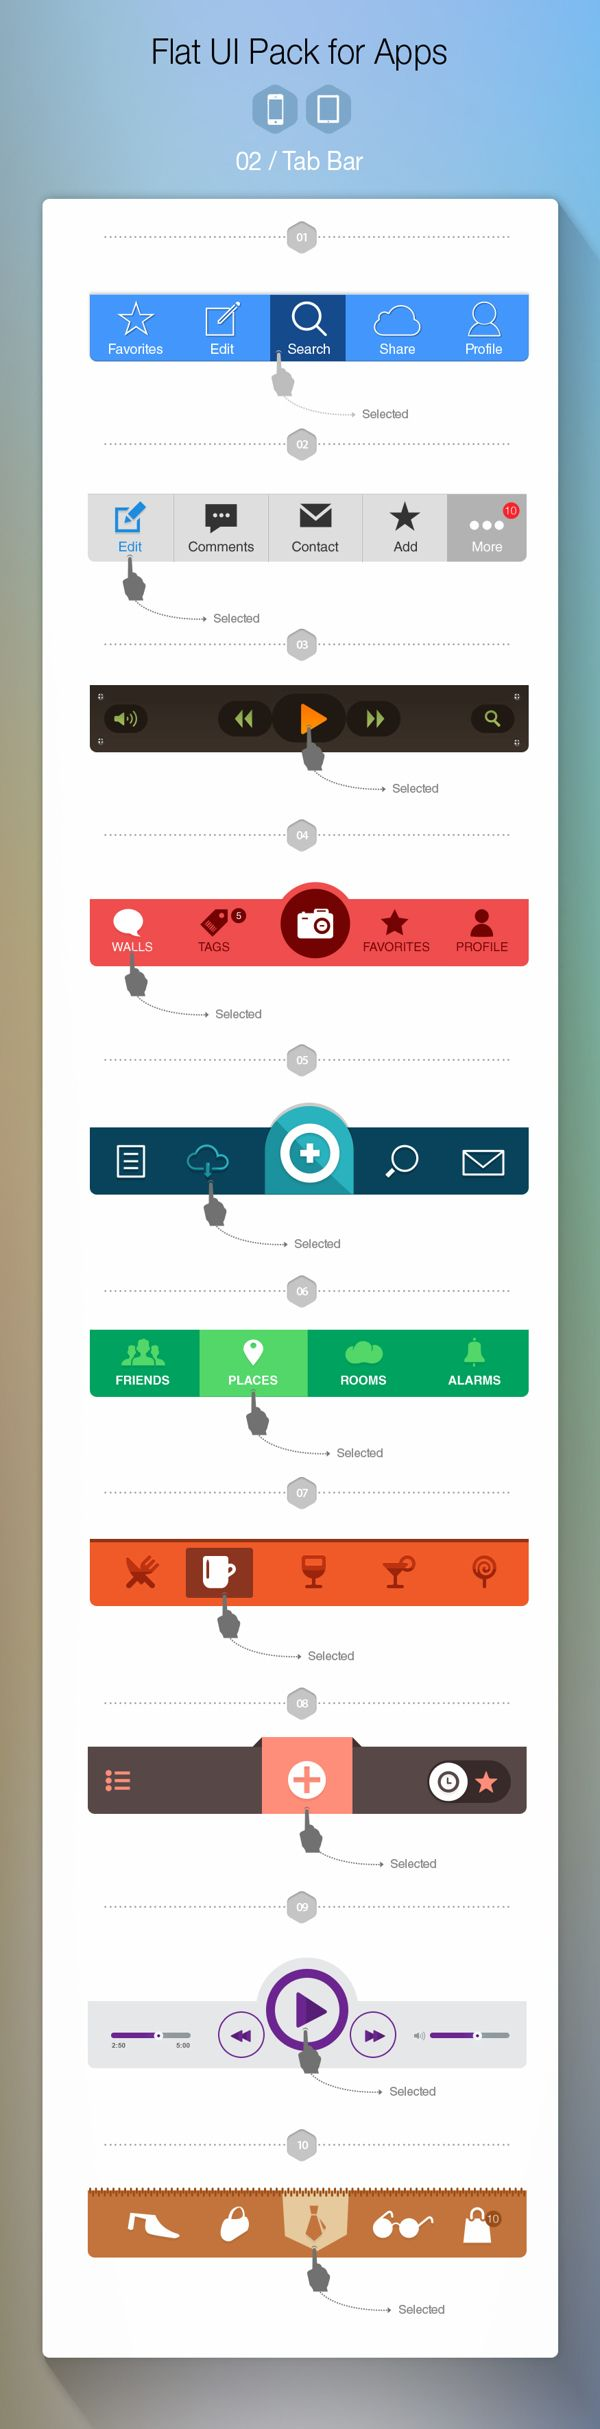 Free Flat UI Pack for Apps   #ui